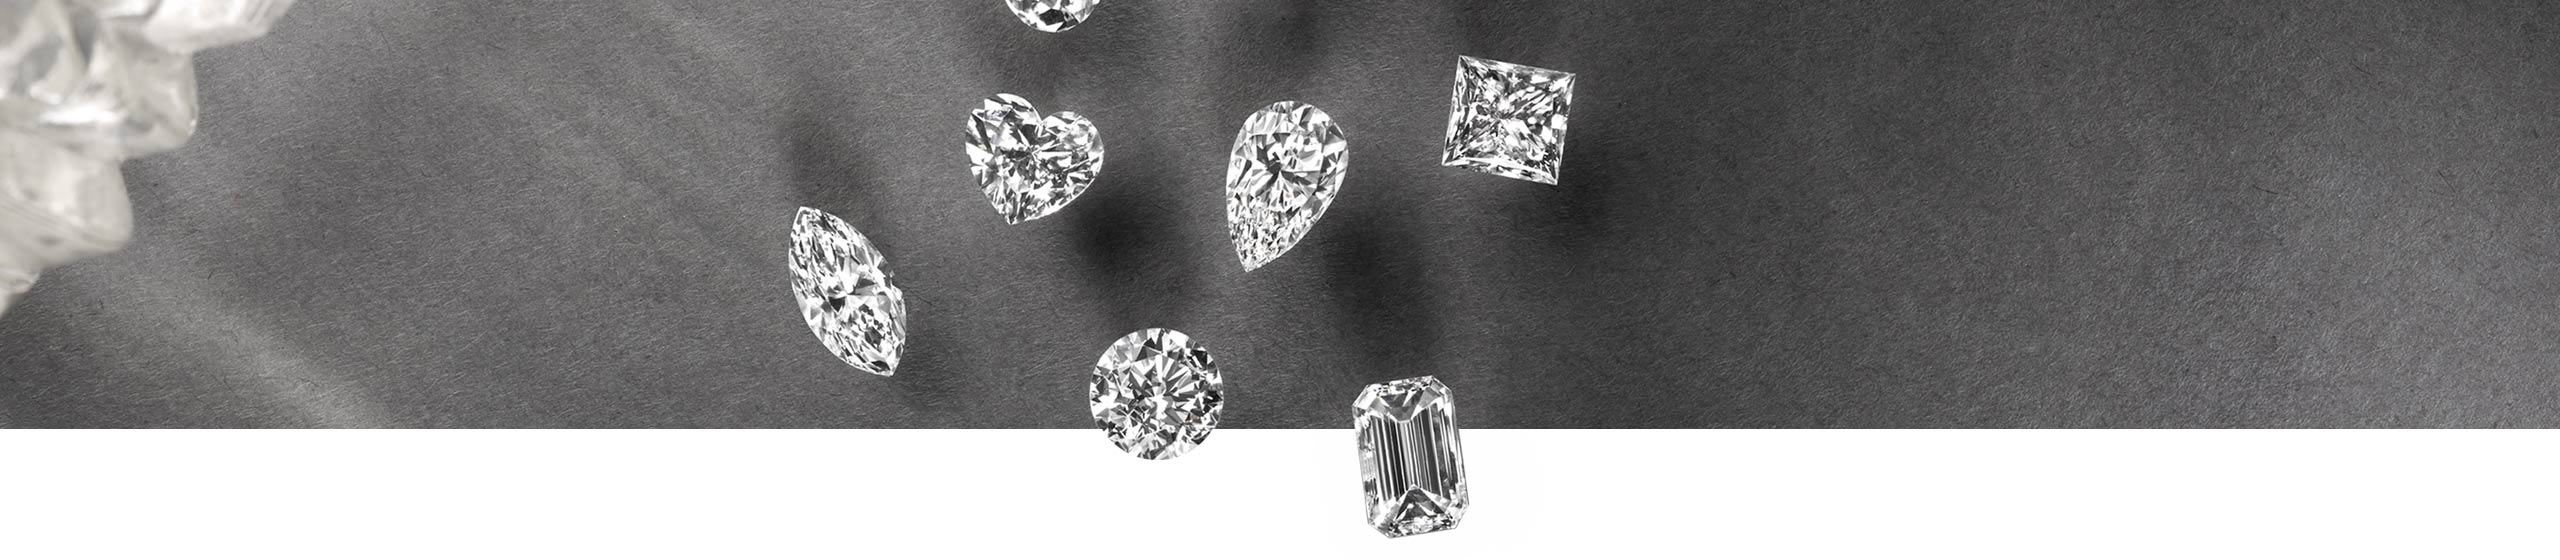 Top View of Loose Diamonds in Different Shapes